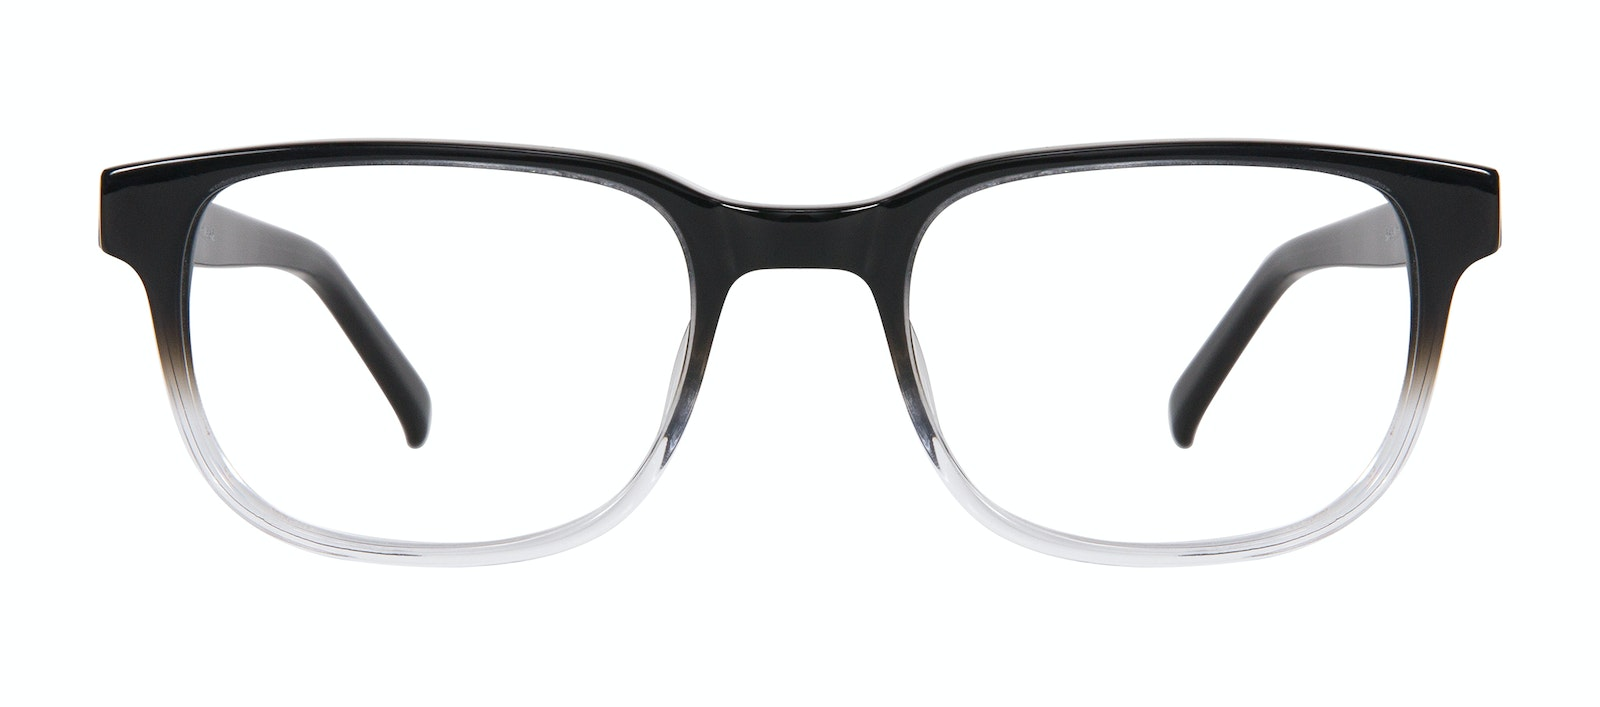 Affordable Fashion Glasses Square Eyeglasses Men Role Onyx Clear Front